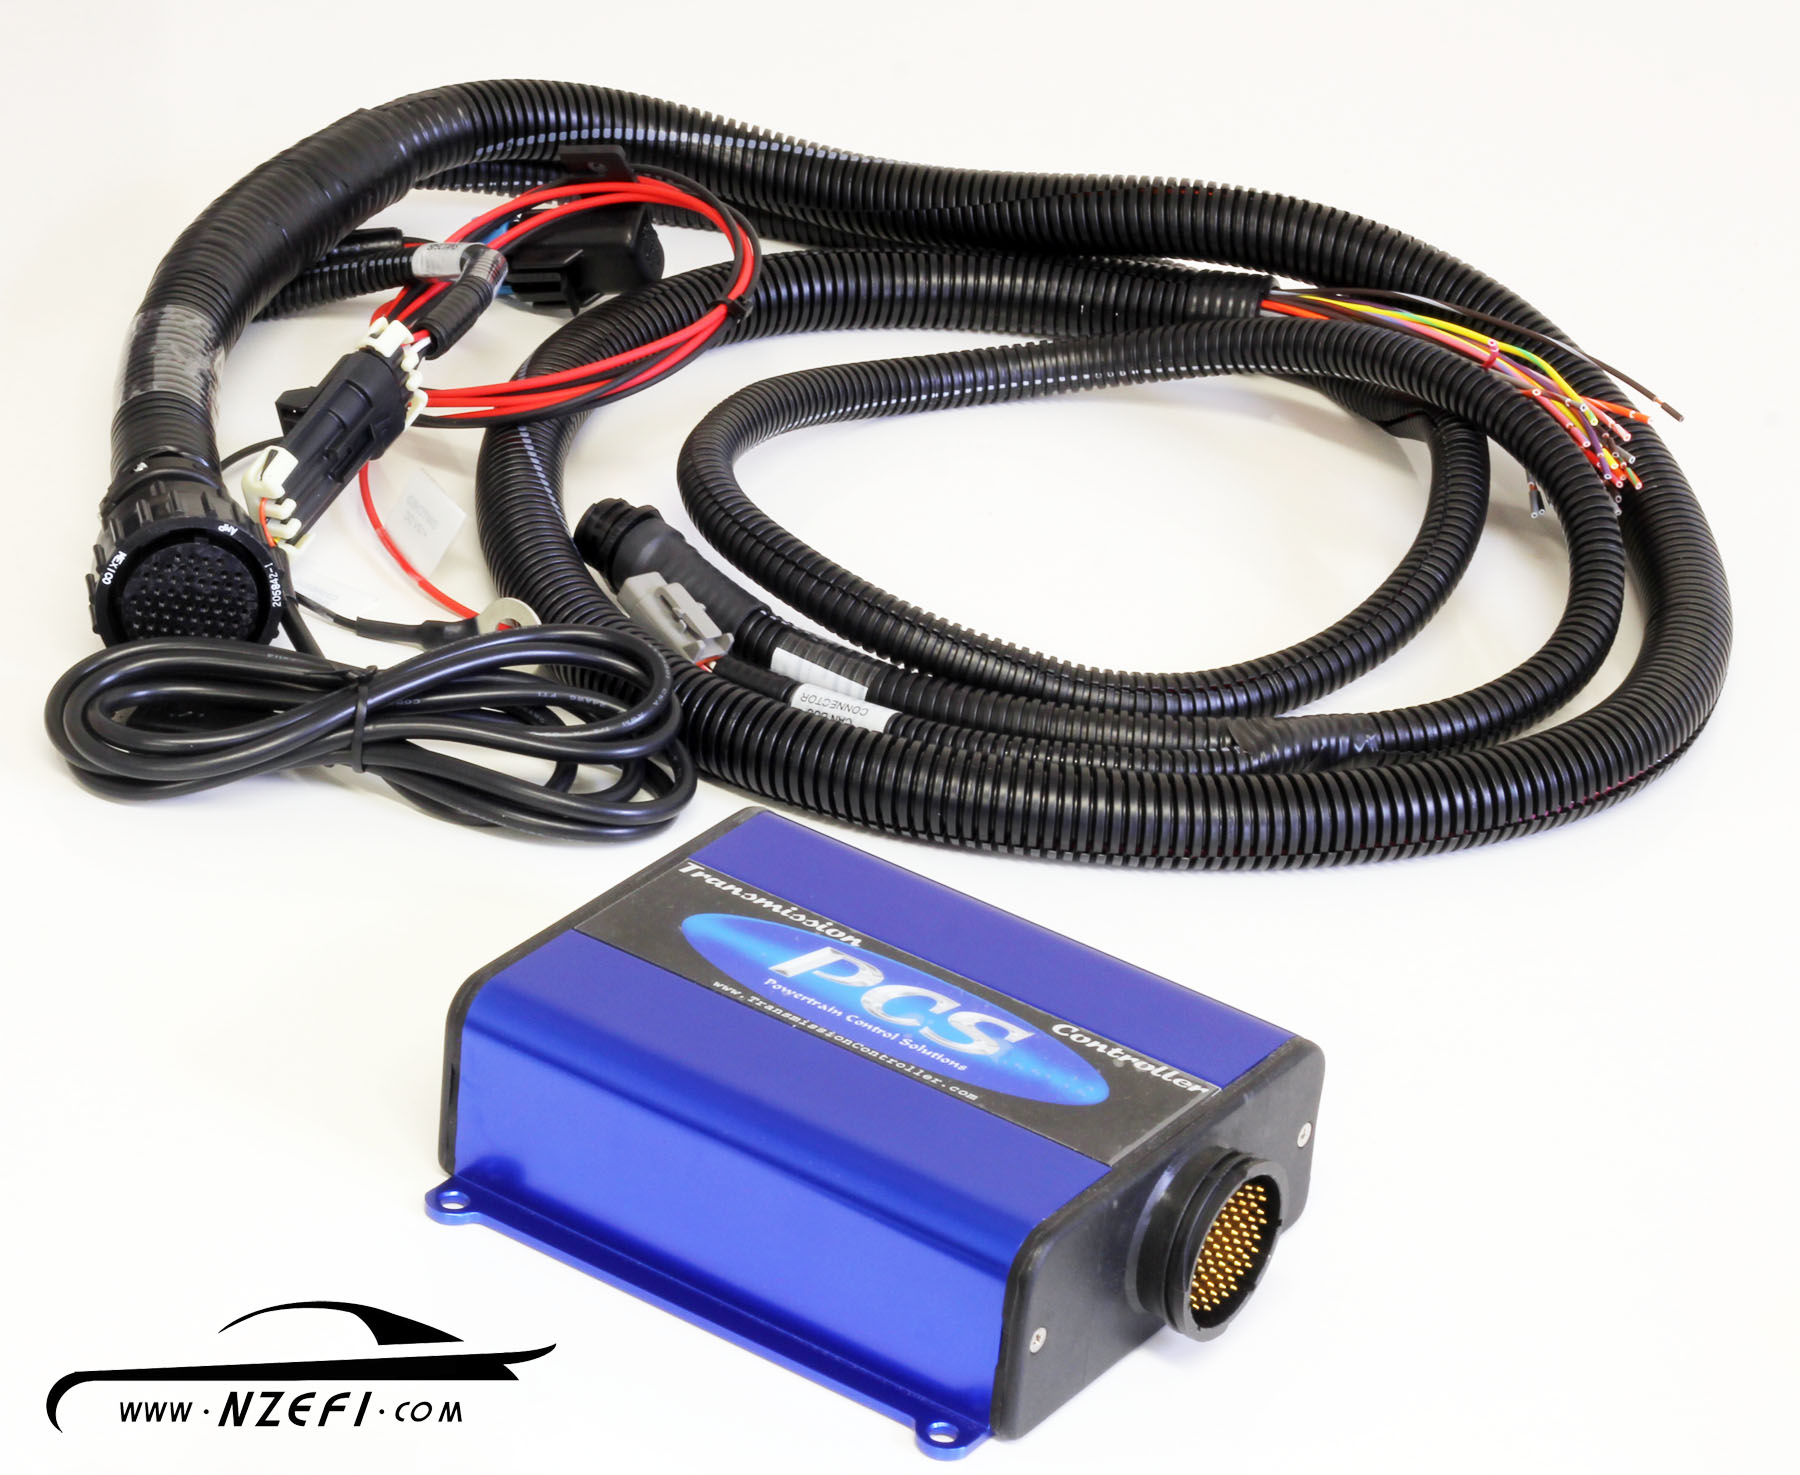 PCS TCM 2000 Transmission Controller with Wiring Harness?resize\\\\\\\\\\\\\\\\\\\\\\\\\\\\\\\\\\\\\\\\\\\\\\\\\\\\\\\\\\\\\\\\\\\\\\\\\\\\\\\\\\\\\\\\\\\\\\\\\\\\\\\\\\\\\\\\\\\\\\\\\\\\\\\=665%2C545 imperial convection oven icv wiring diagram imperial deep fryer imperial deep fryer wiring diagram at fashall.co